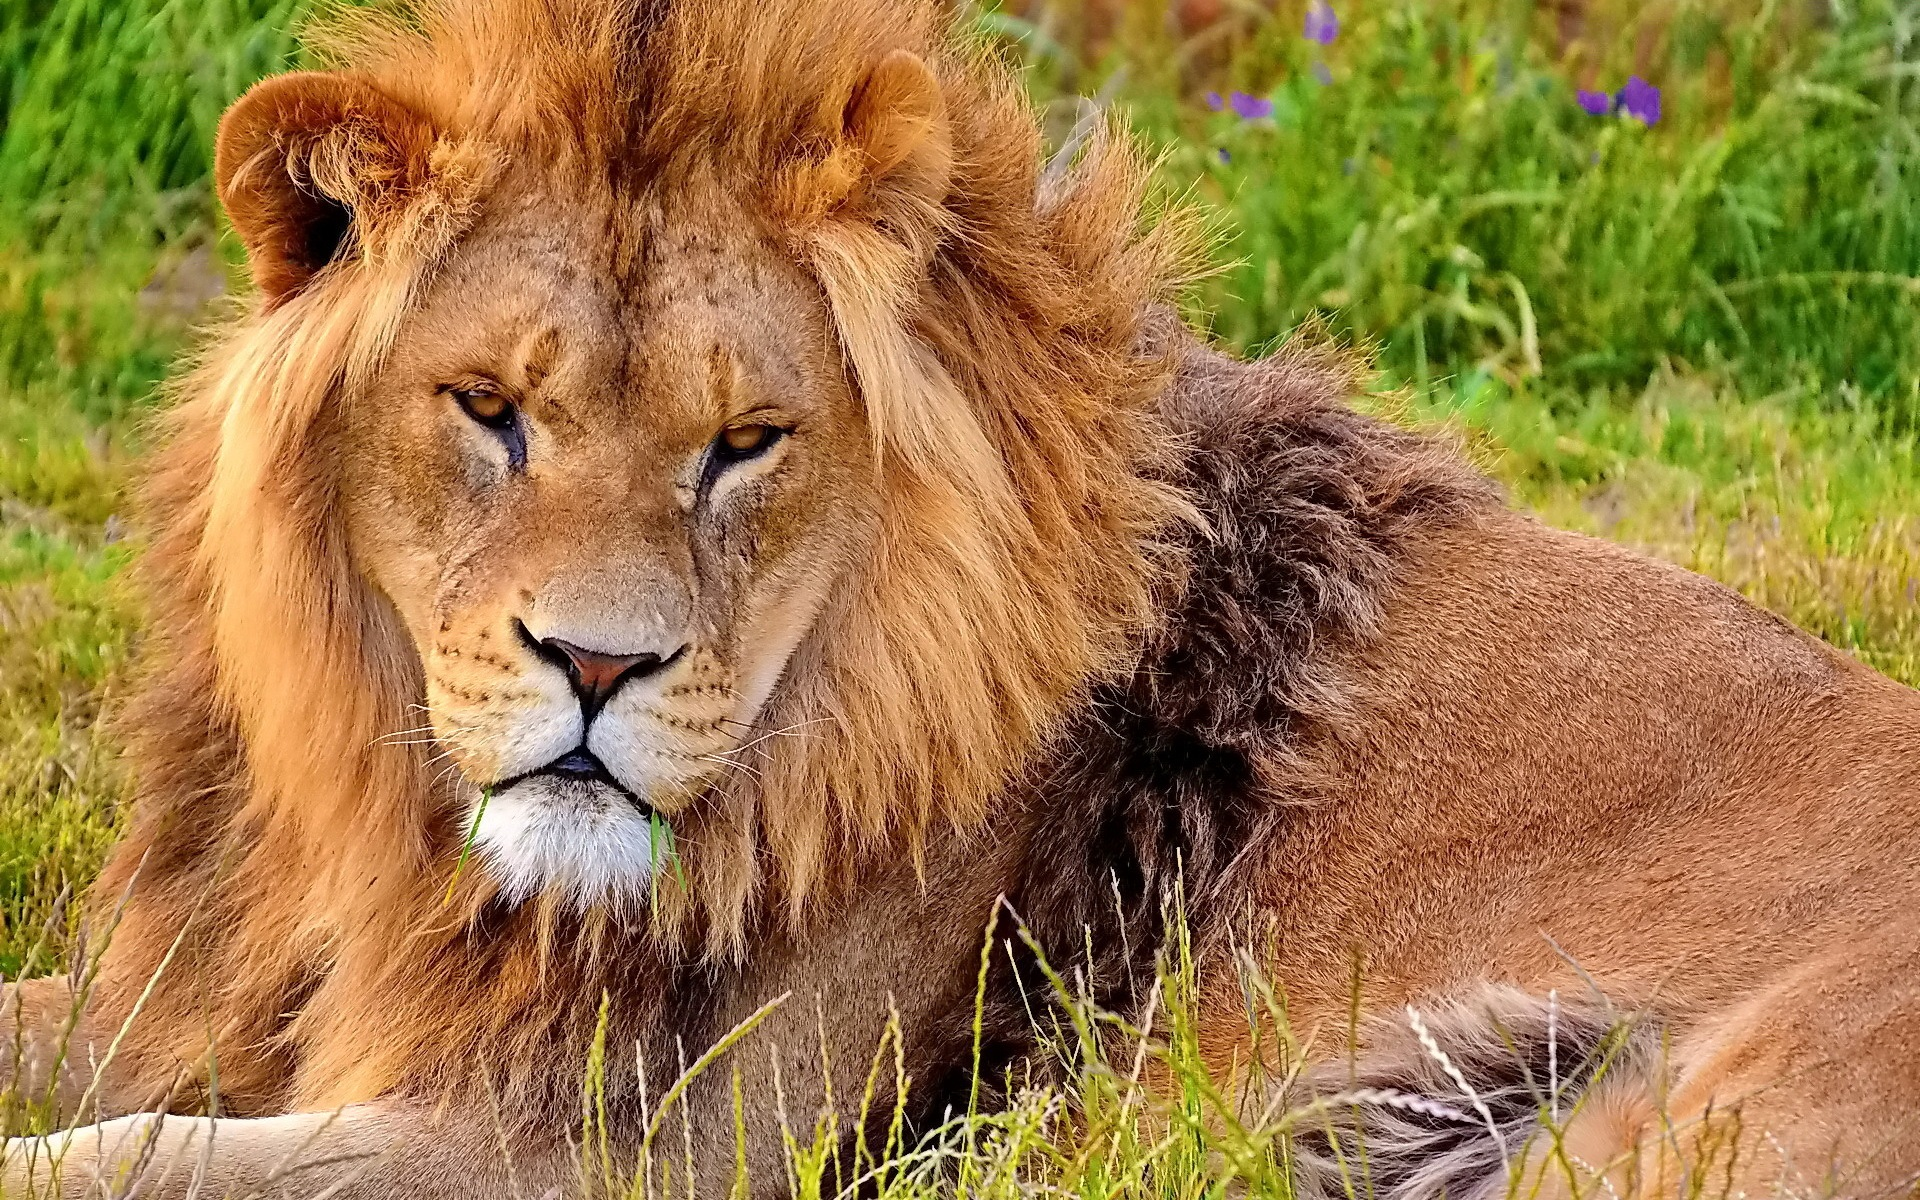 Angry Lion Wallpaper Hd 1080p Lion In Flower Field Wallpapers 1920x1200 1230238